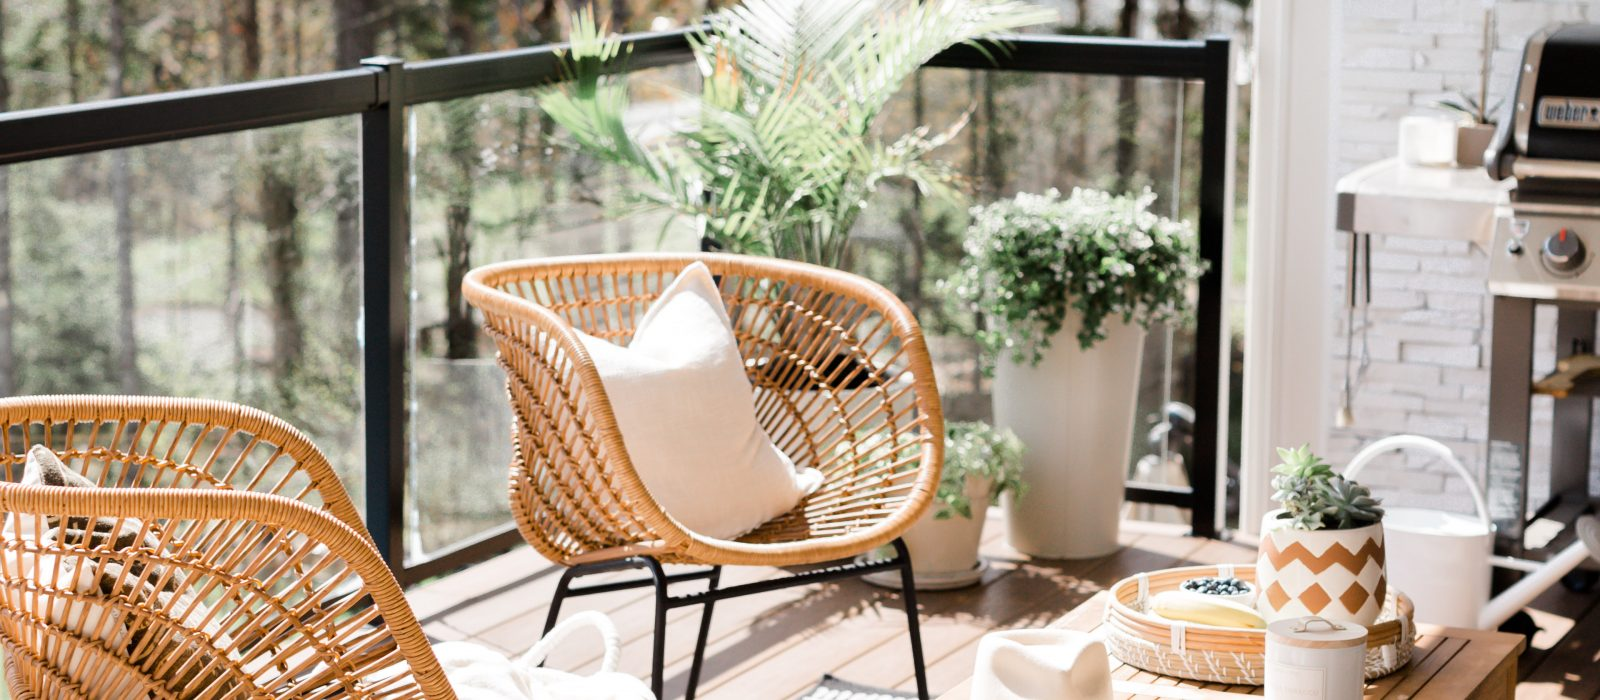 Turn Your Patio into a Staycation Worthy Spot